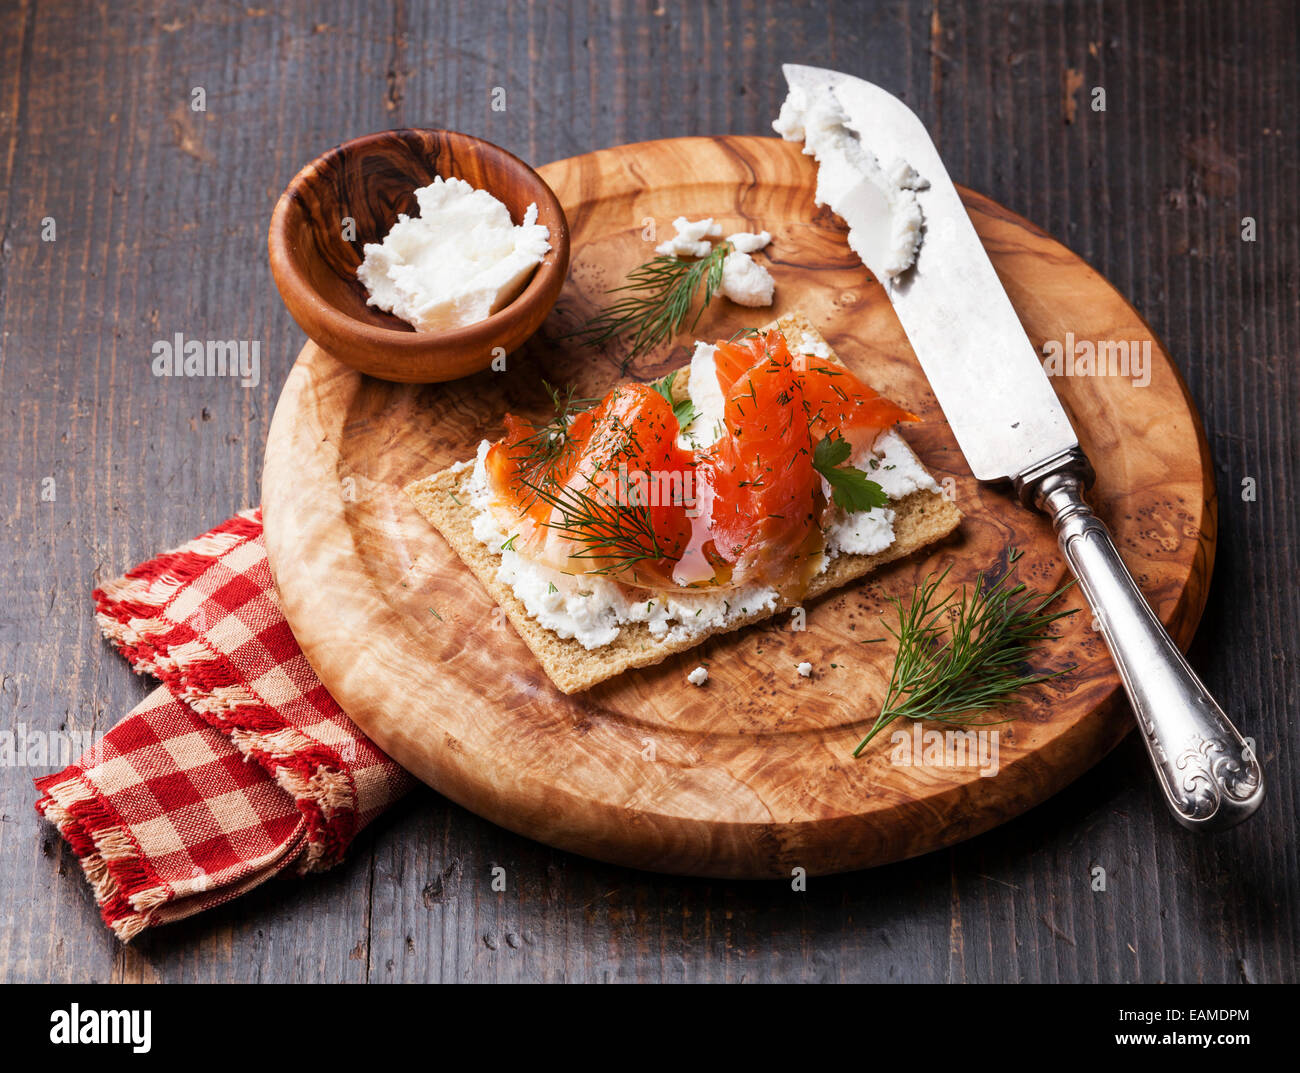 Sandwich on Crisp bread with Smoked salmon and soft Cream cheese on Olive wood plate Stock Photo